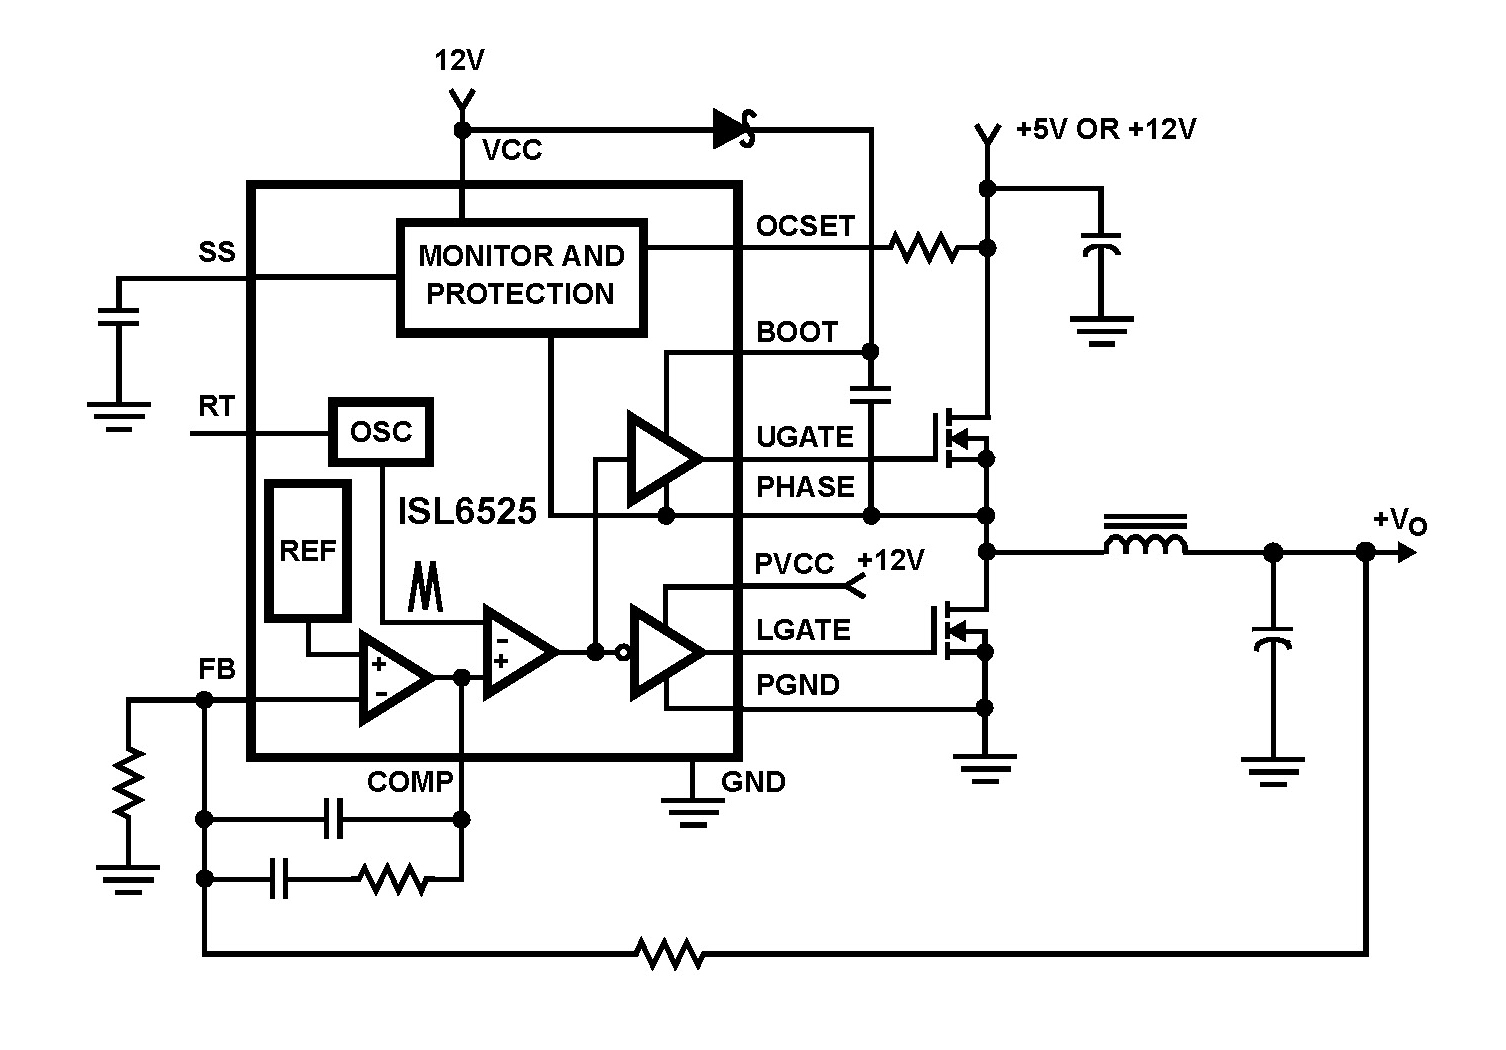 isl6525: buck and synchronous-rectifier pulse-width modulator